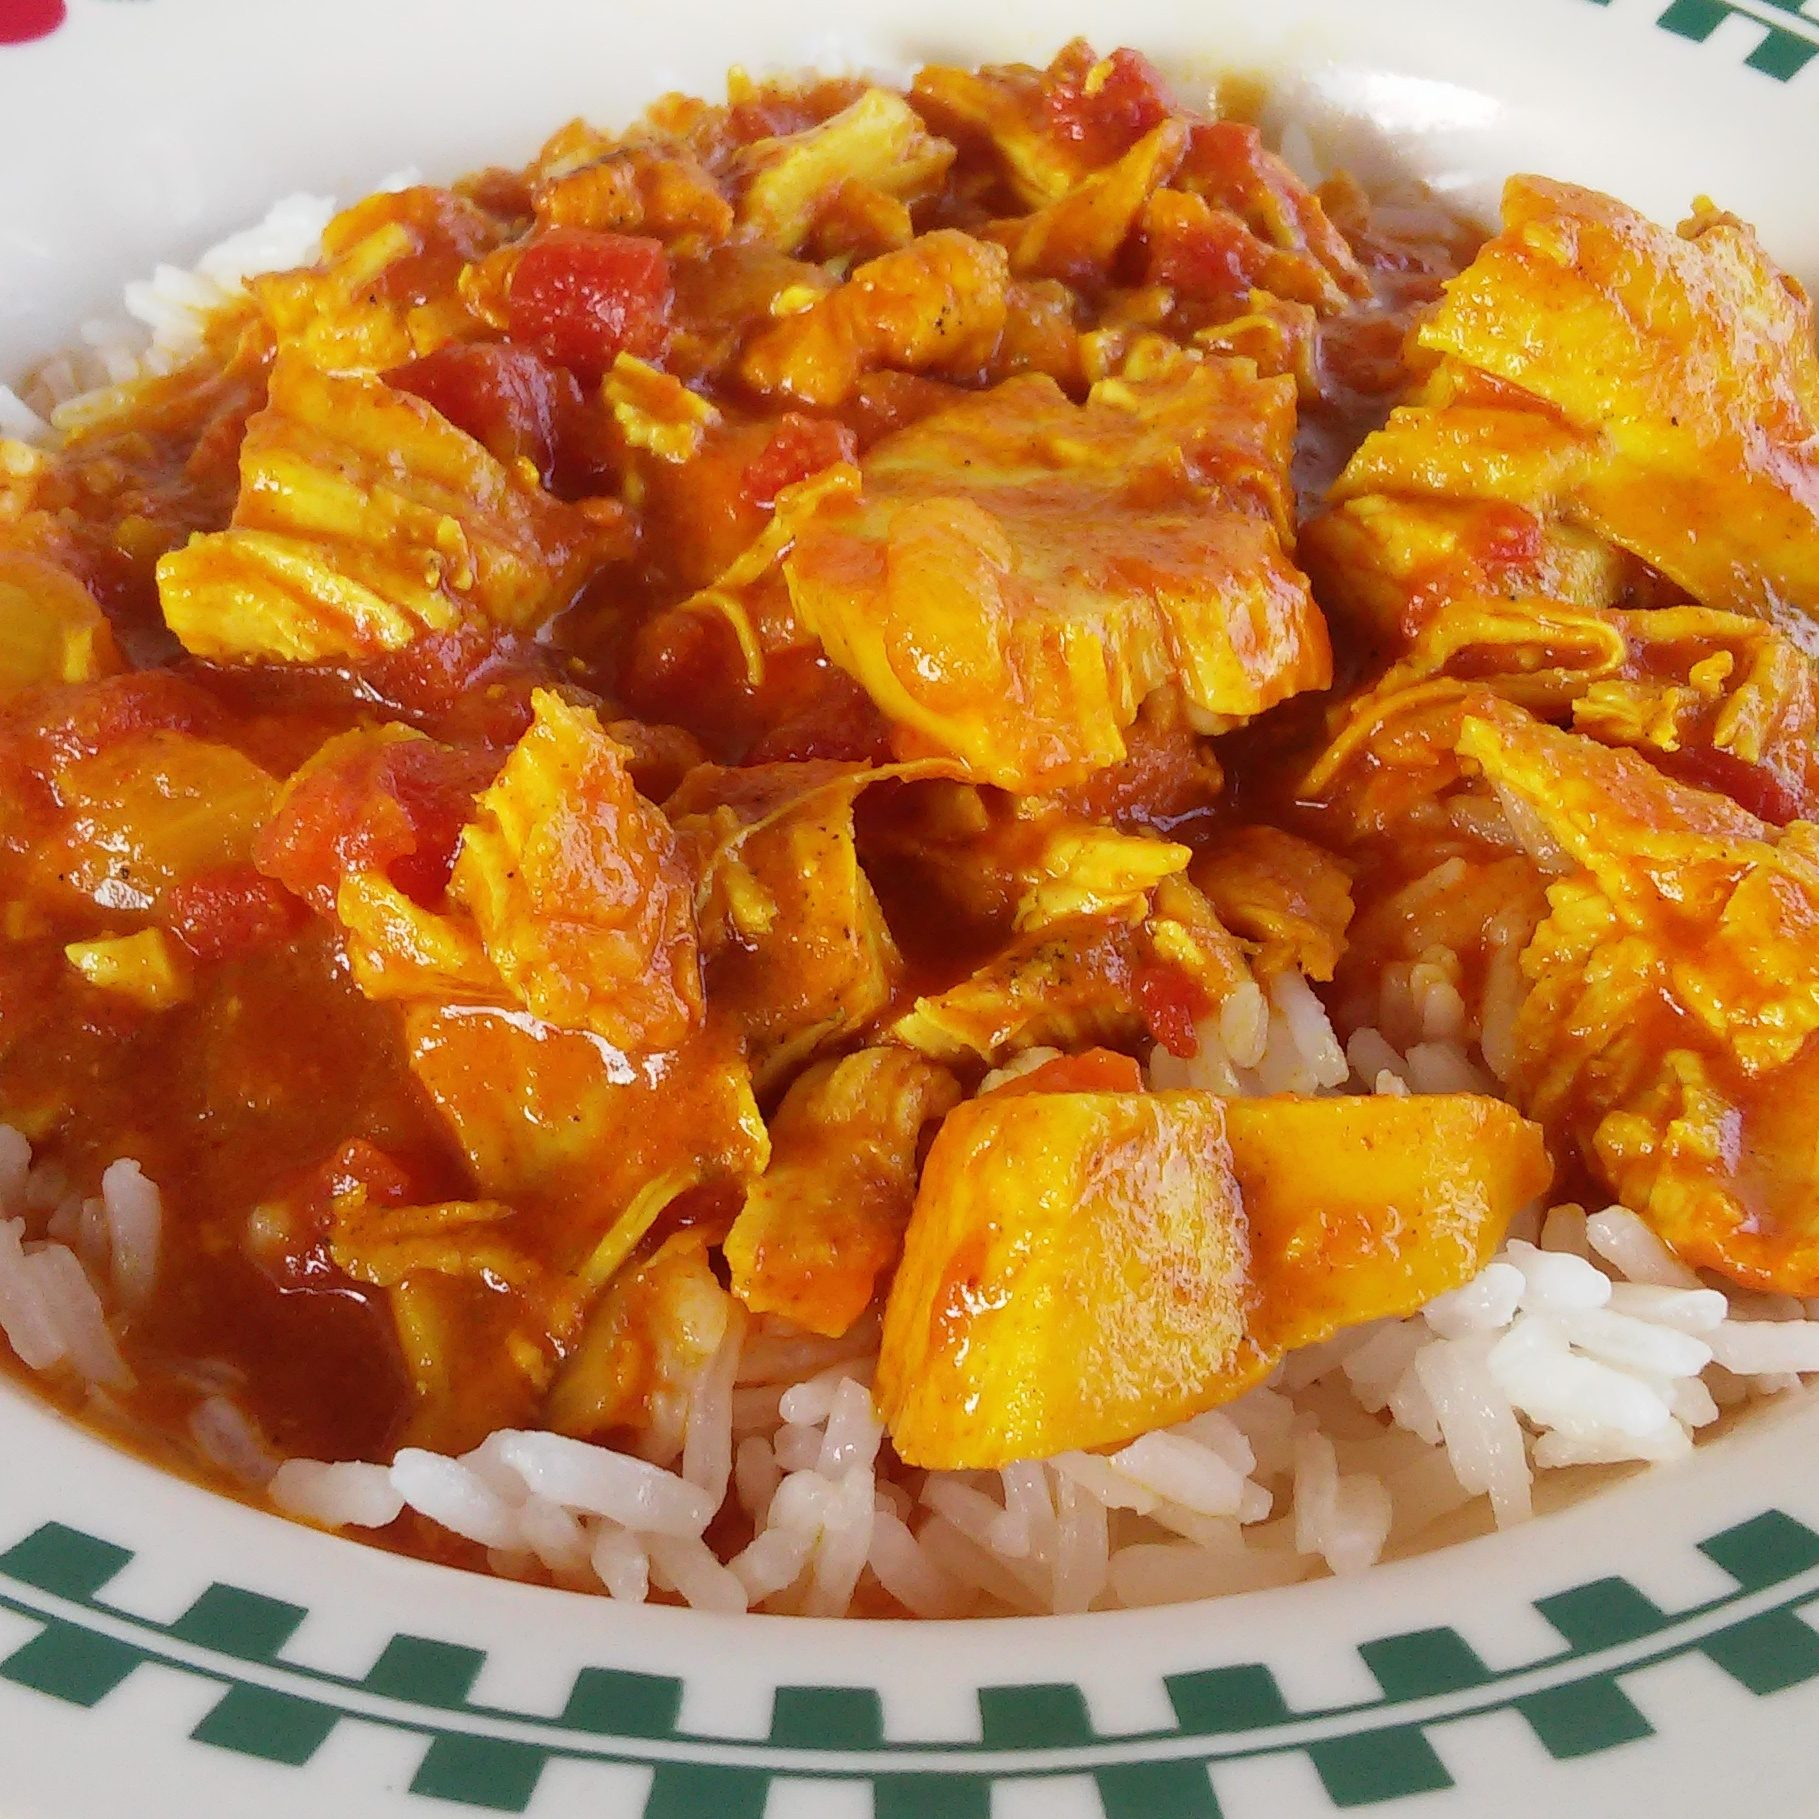 """""""This is a rich, creamy coconut curry dish that comes together quickly in an Instant Pot,"""" says Helene Choi. """"Customize the taste by using more or less curry powder and sugar. Delicious over jasmine or basmati rice! Garnish with chopped chives, if desired."""""""